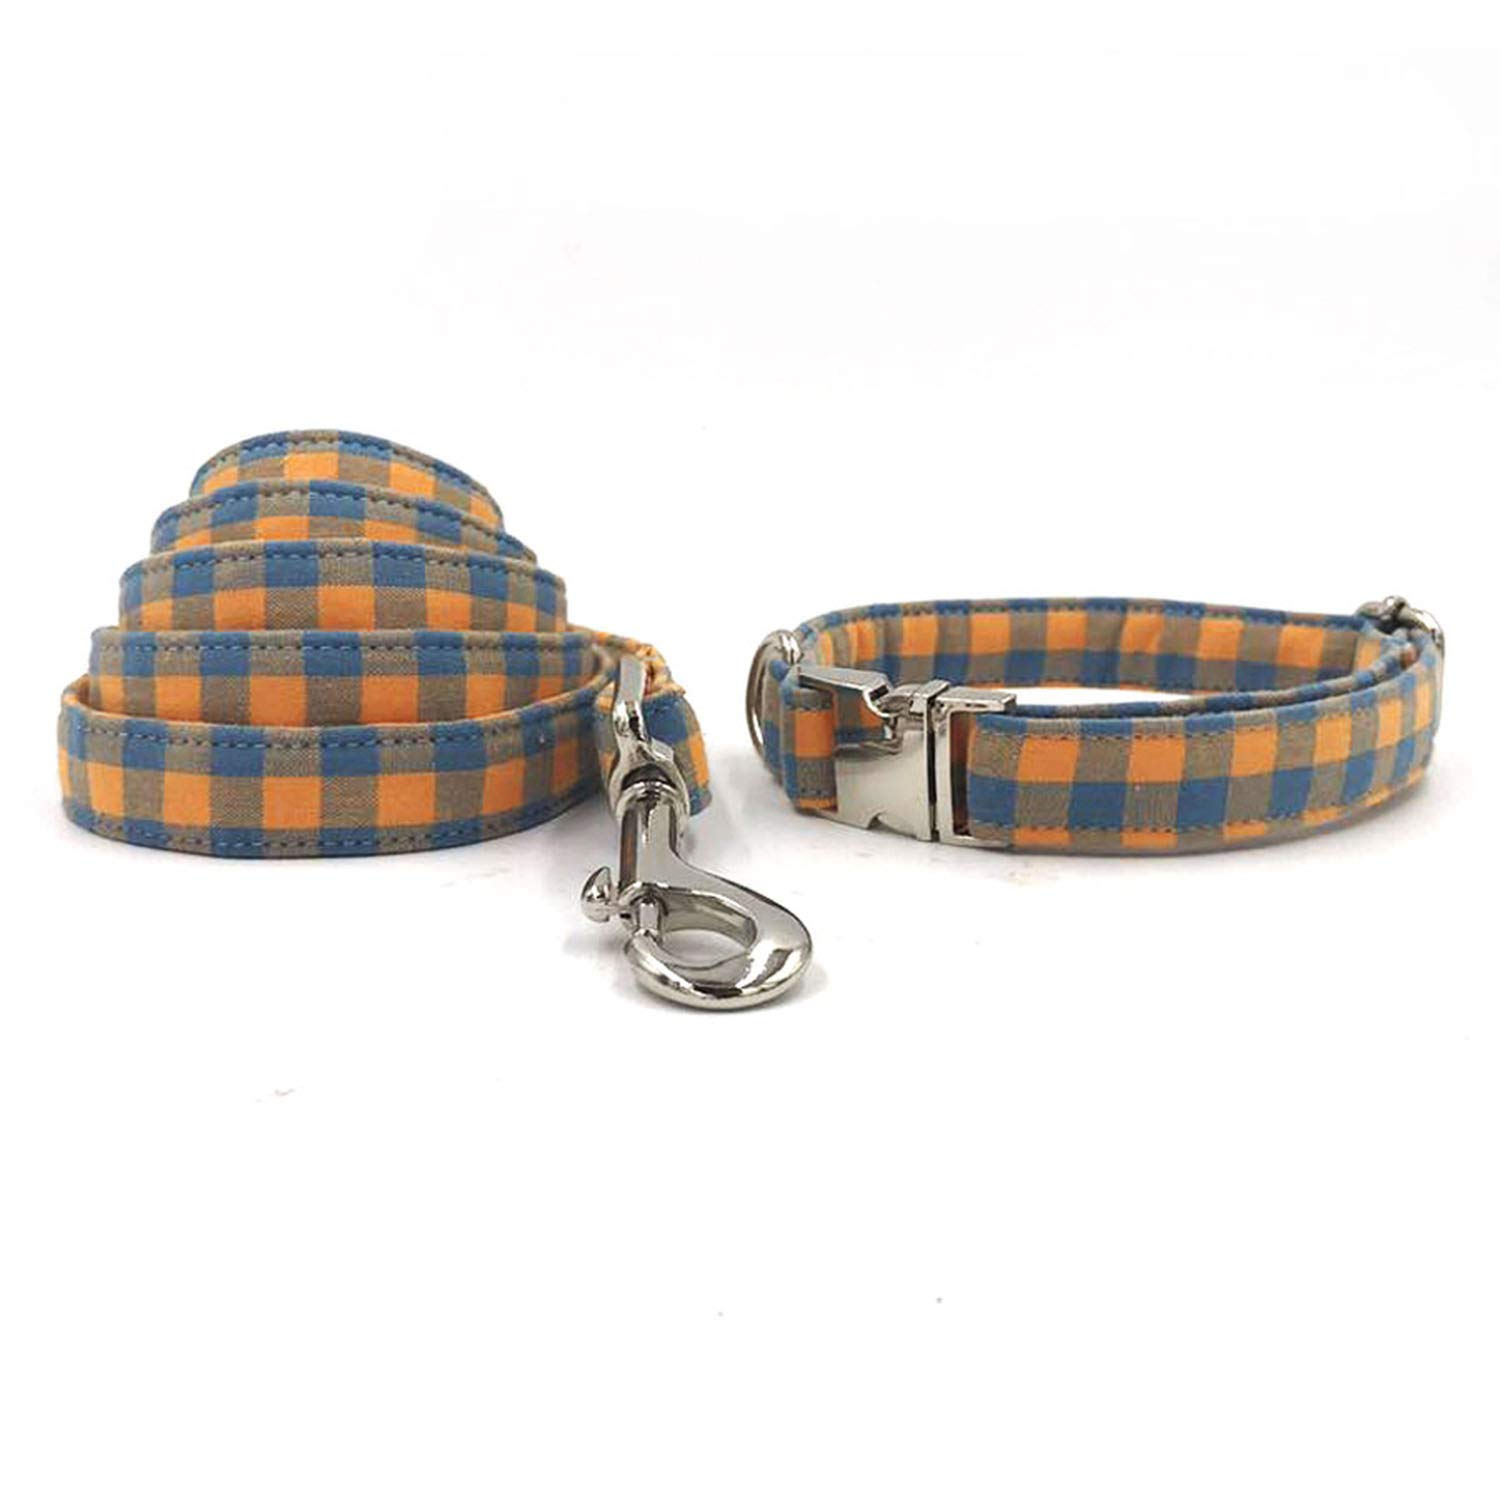 Collar and leash L collar and leash L Nerefy The orange Plaid Dog Collar and Leash with Bow Tie Dog Training Collar and Leash,Collar and Leash,L